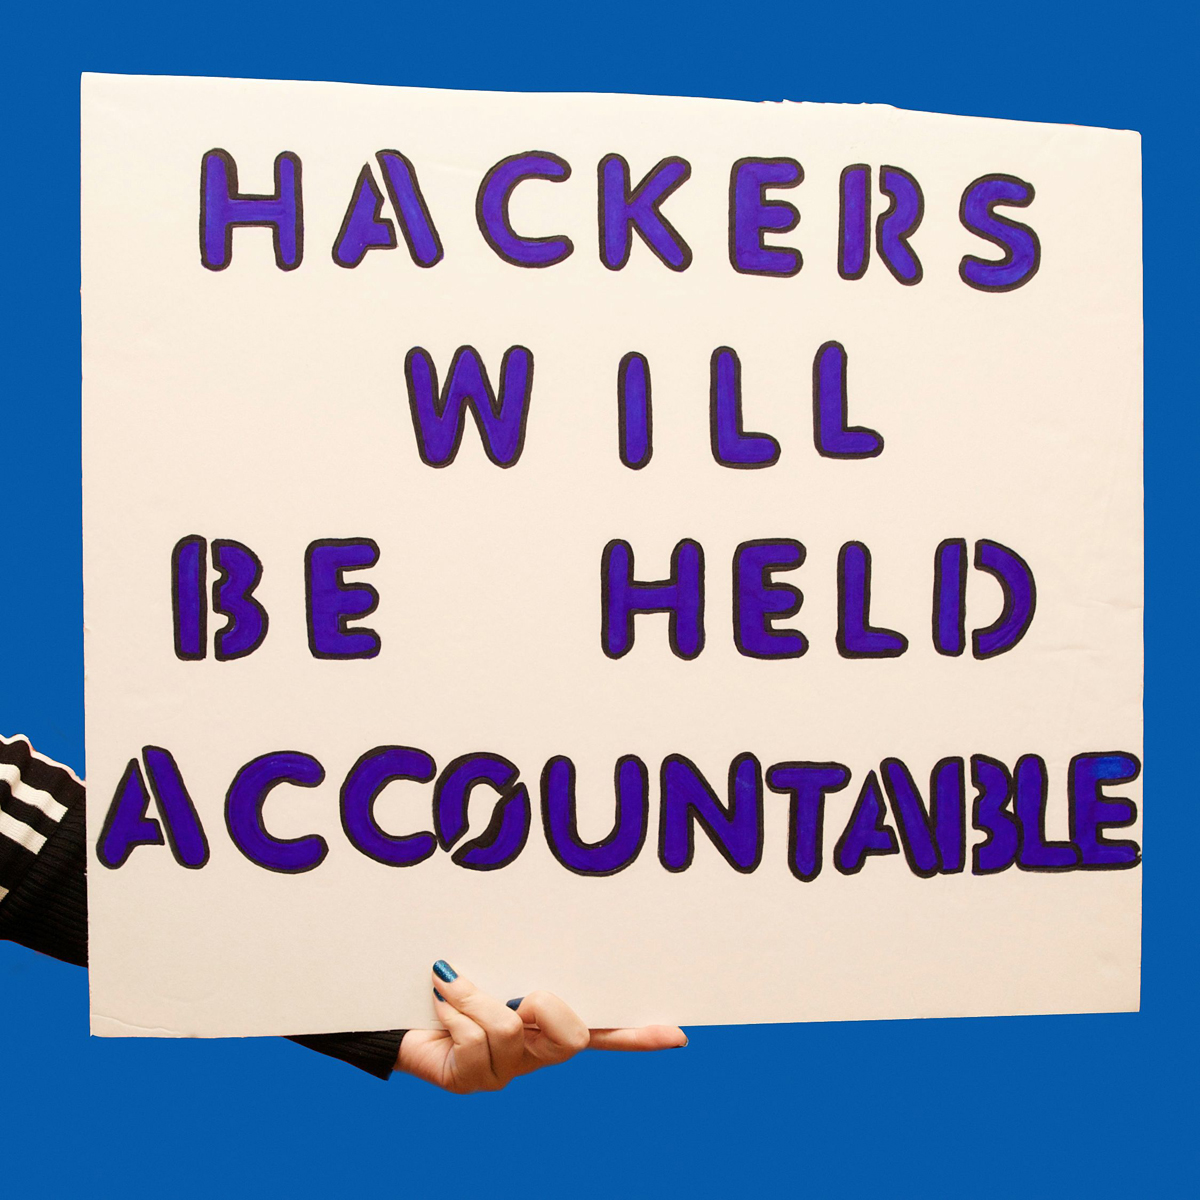 45 Protest Signs_Brandon and Olivia Locher_24_hackers will be held accountable